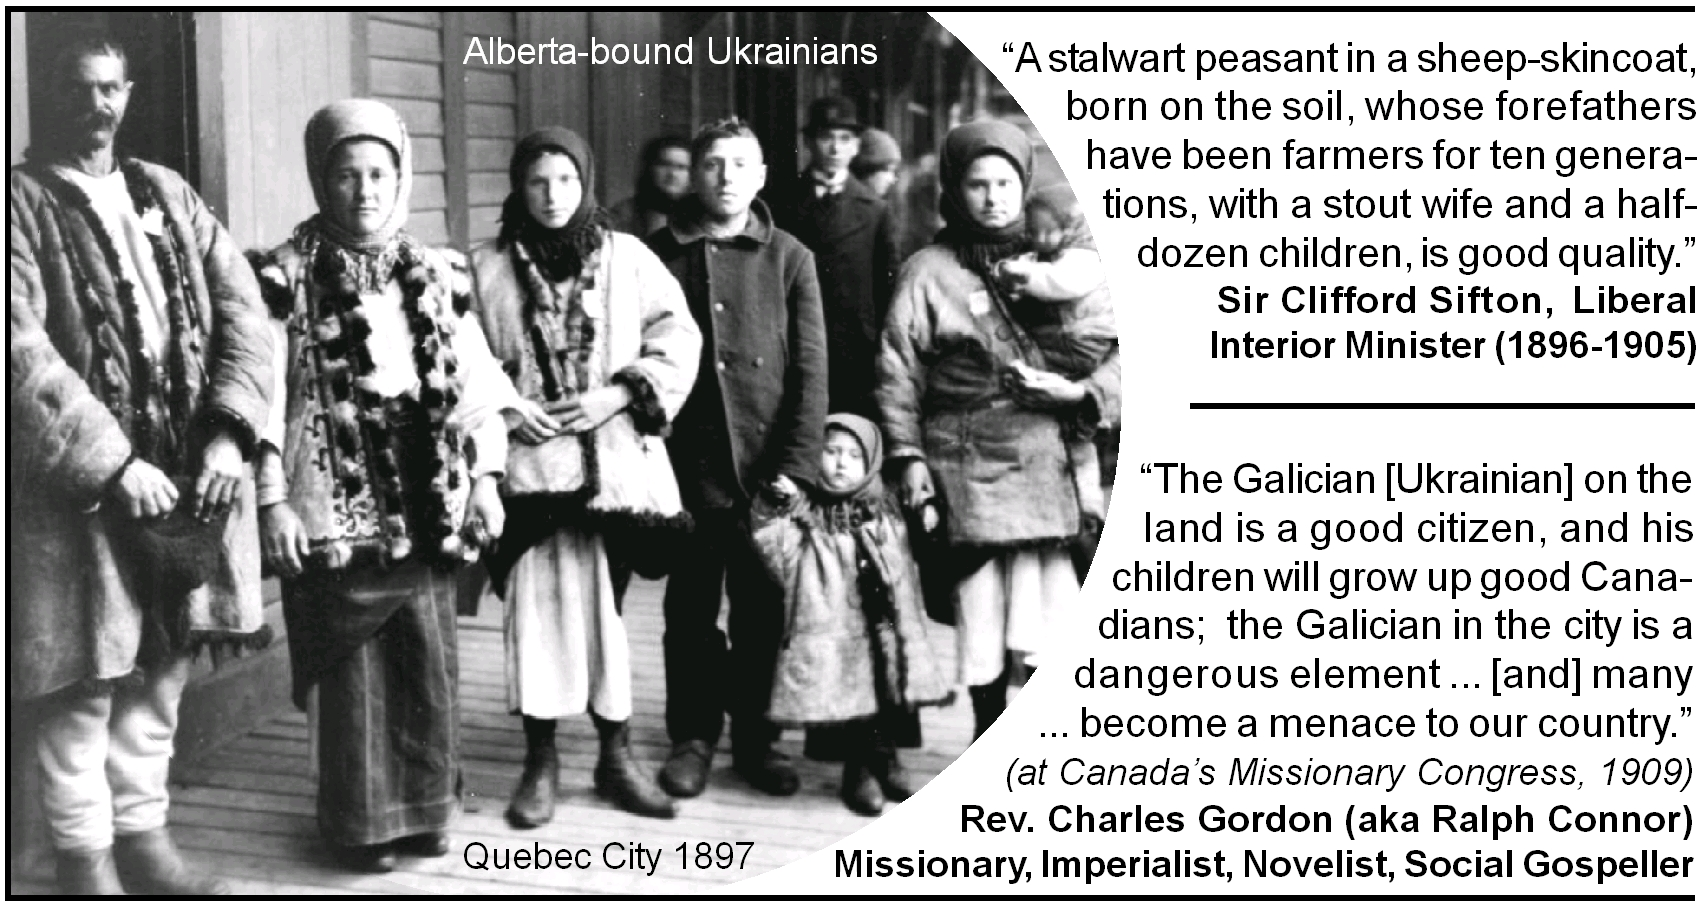 "Social Gospeller Charles Gordon (aka Ralph Connor) told Cda's Missionary Congress, 1909, that the Ukrainian ""in the city is a dangerous element...[and] many...become a menace to our country."""